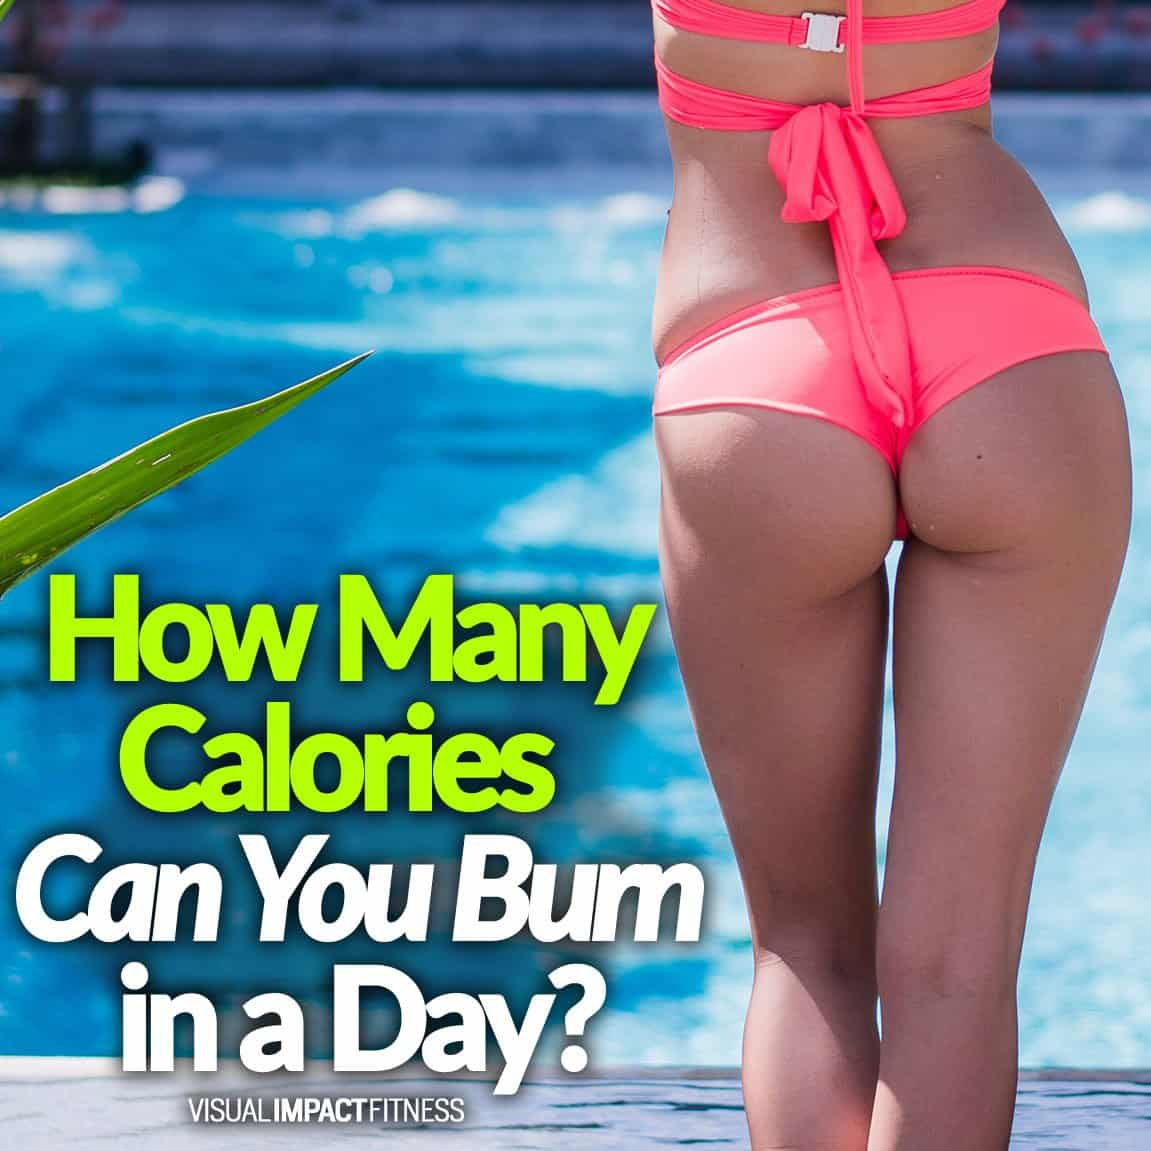 How Many Calories Can You Burn in a Day